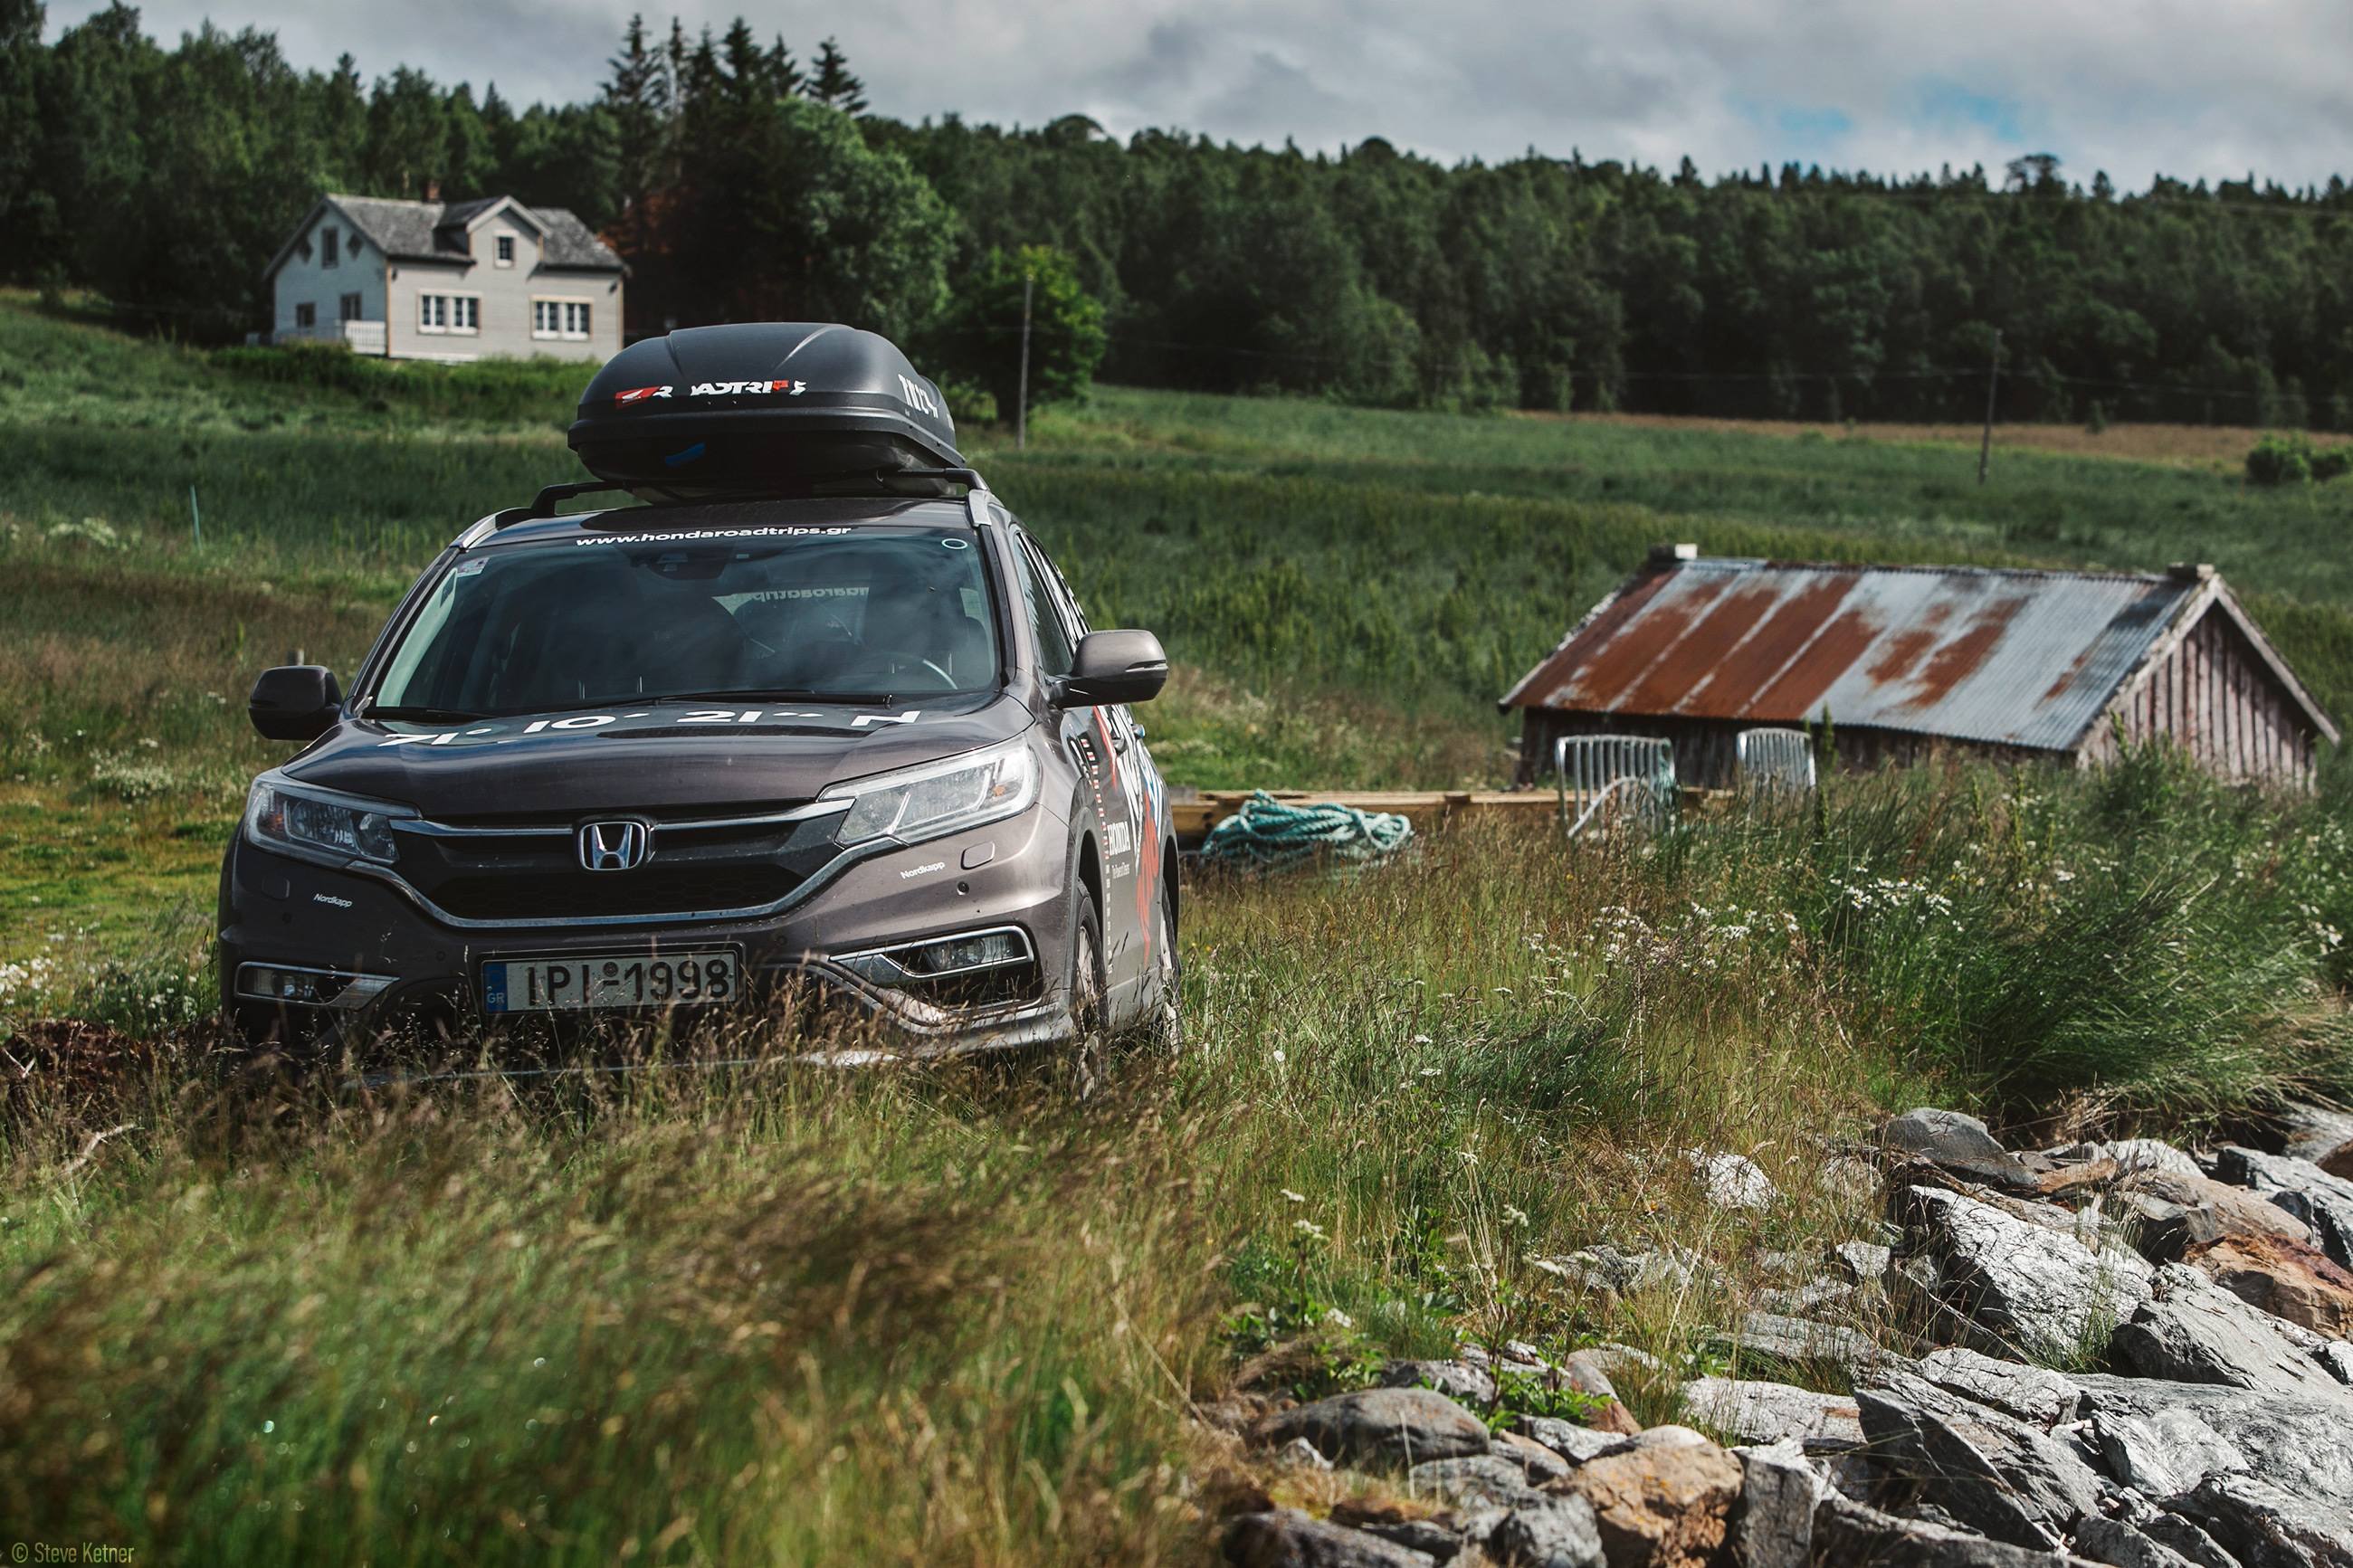 Steve Ketner - Honda CR-V 2016 – Fjords, Norway